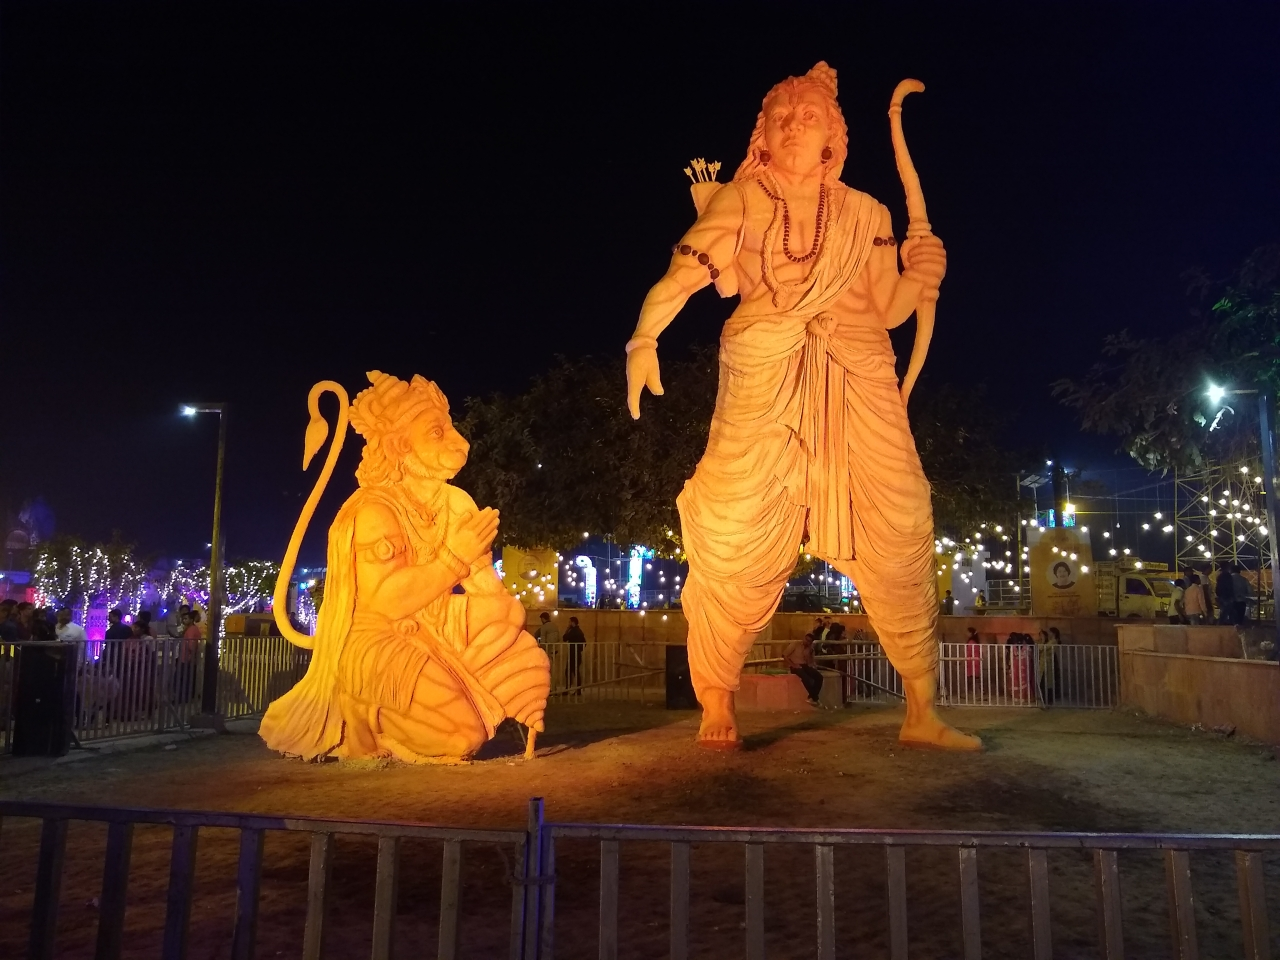 PoP statues of Lord Ram and Lord Hanuman at Ram Ki Paidi